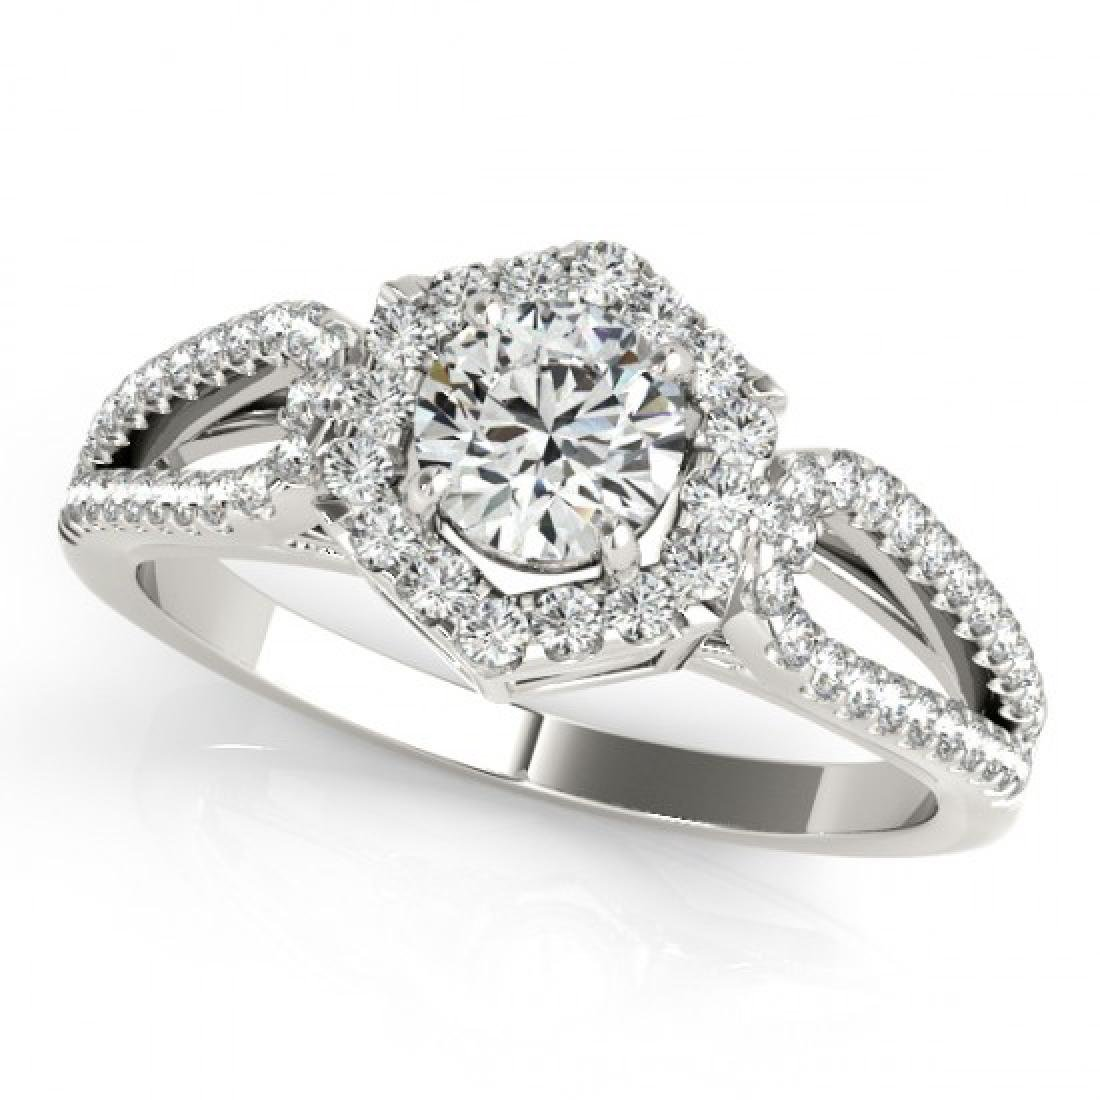 1.18 CTW Certified VS/SI Diamond Solitaire Halo Ring